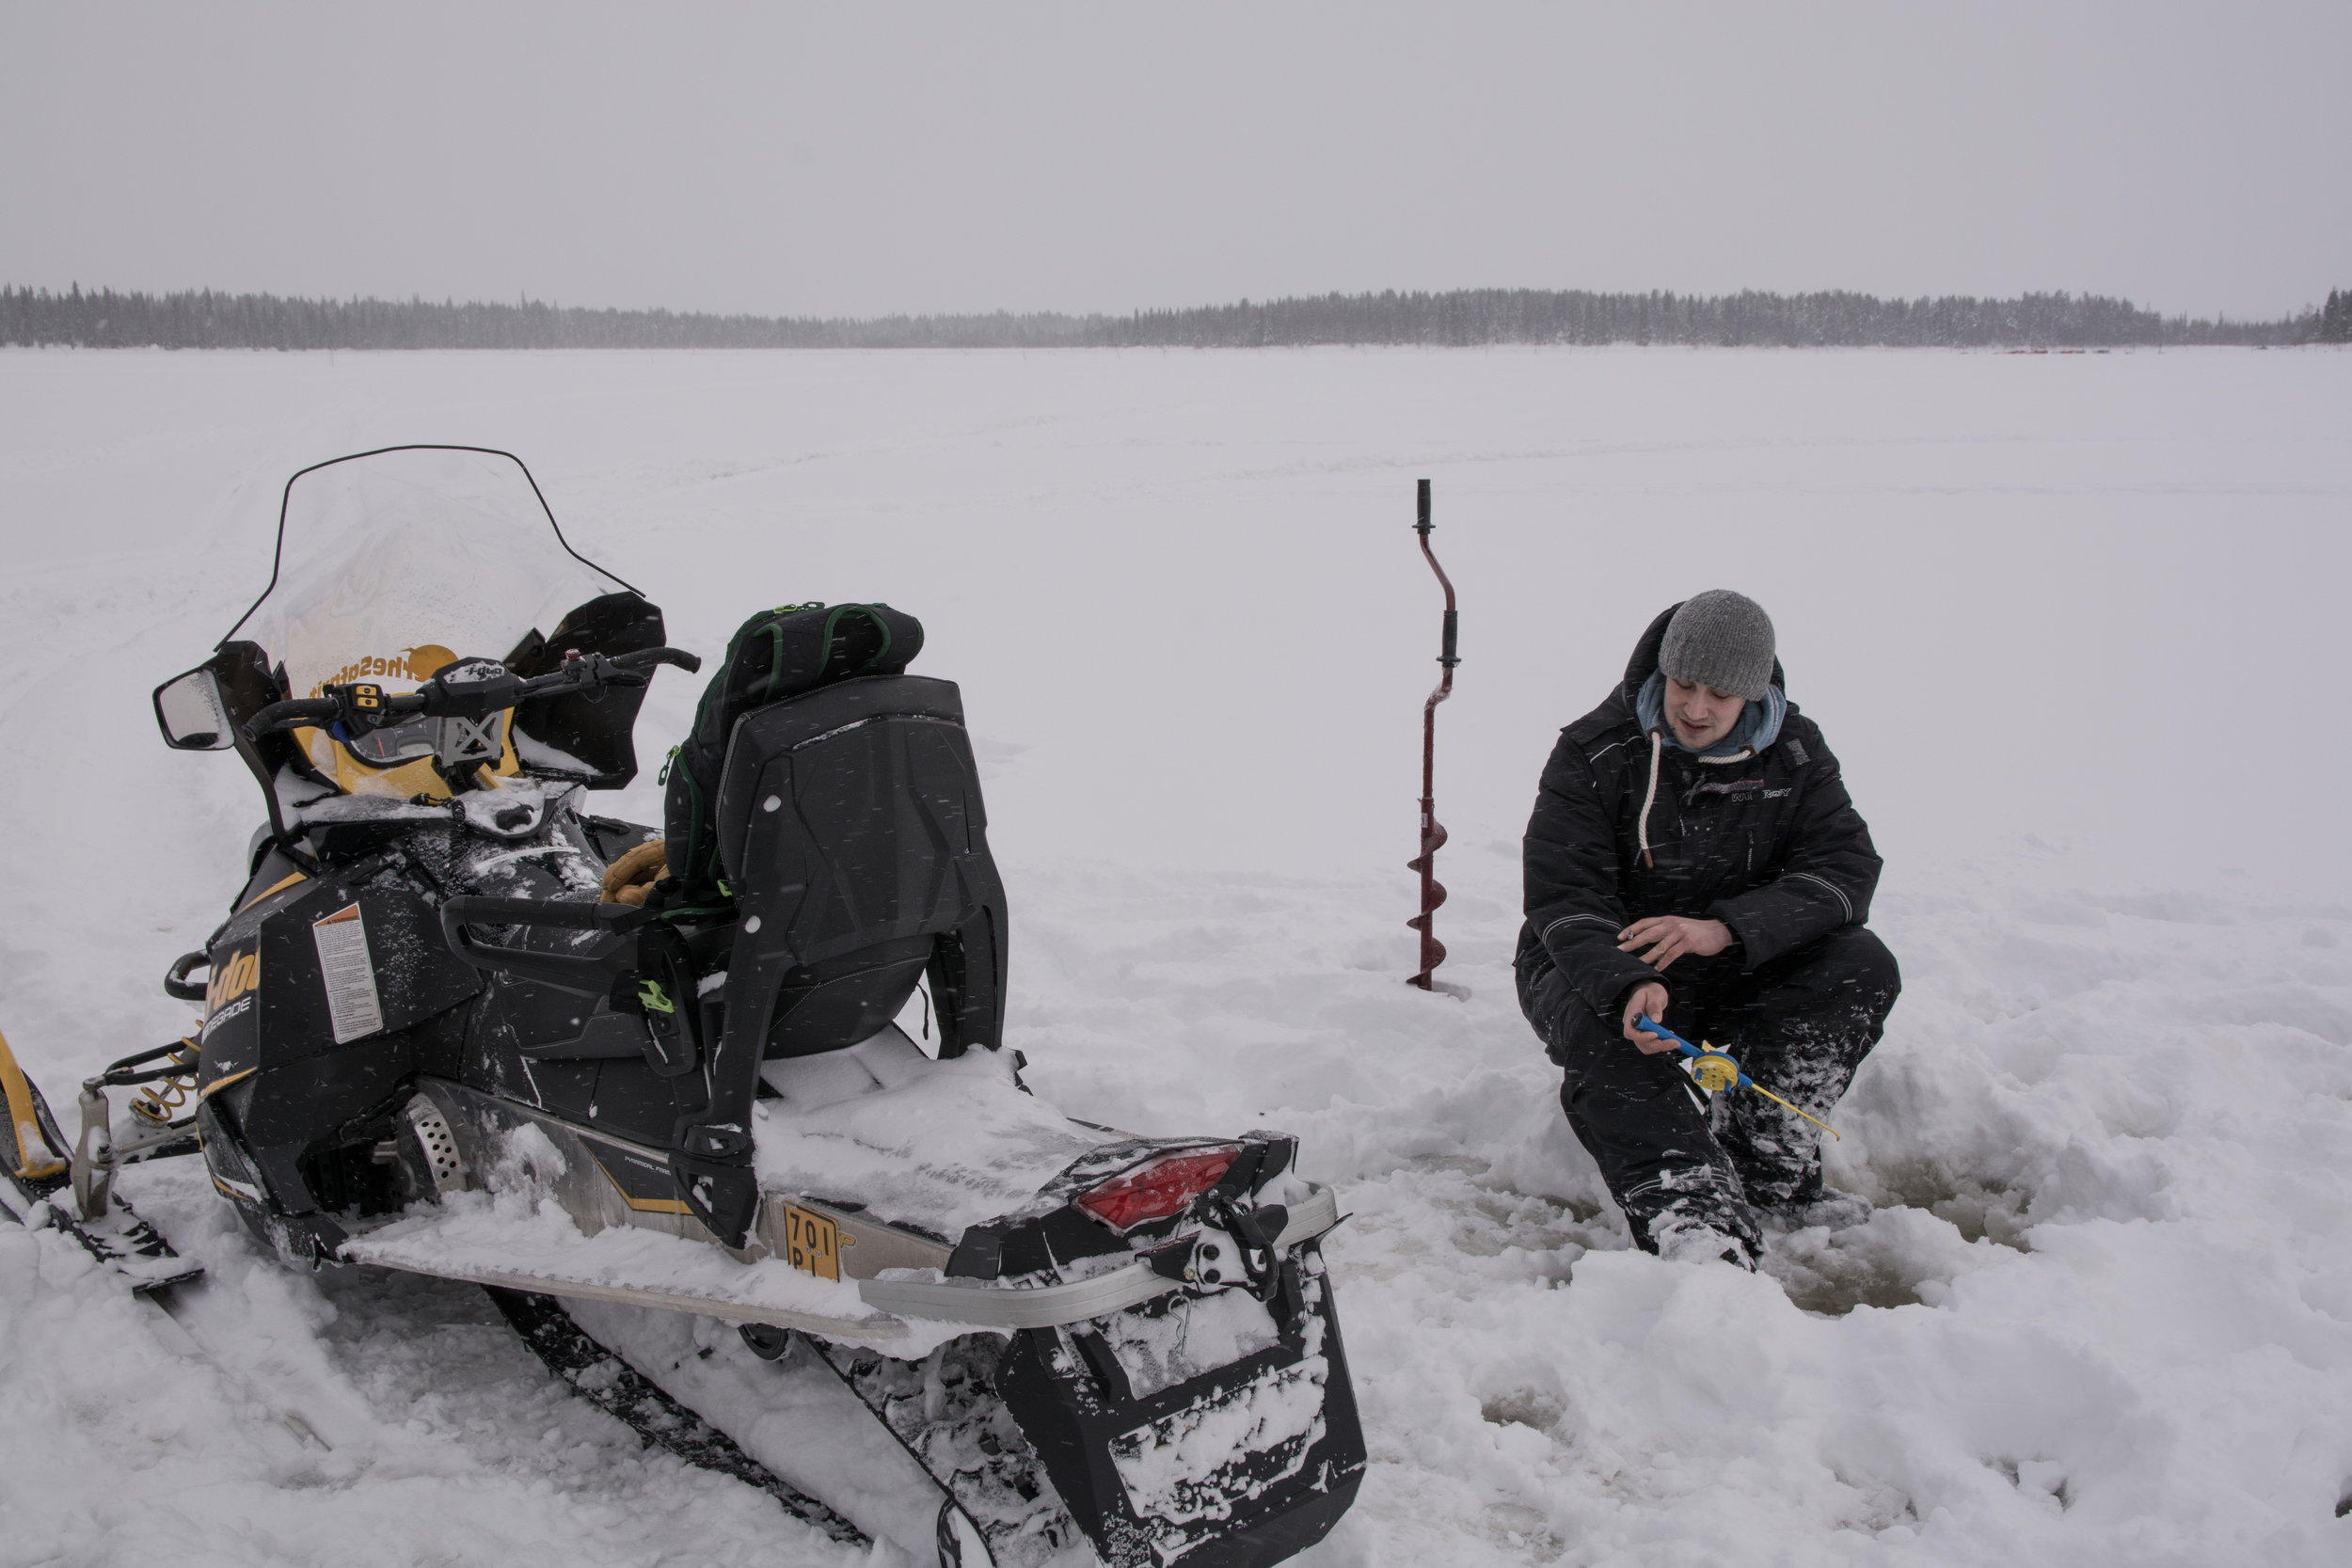 Ice fishing is one way to kill time